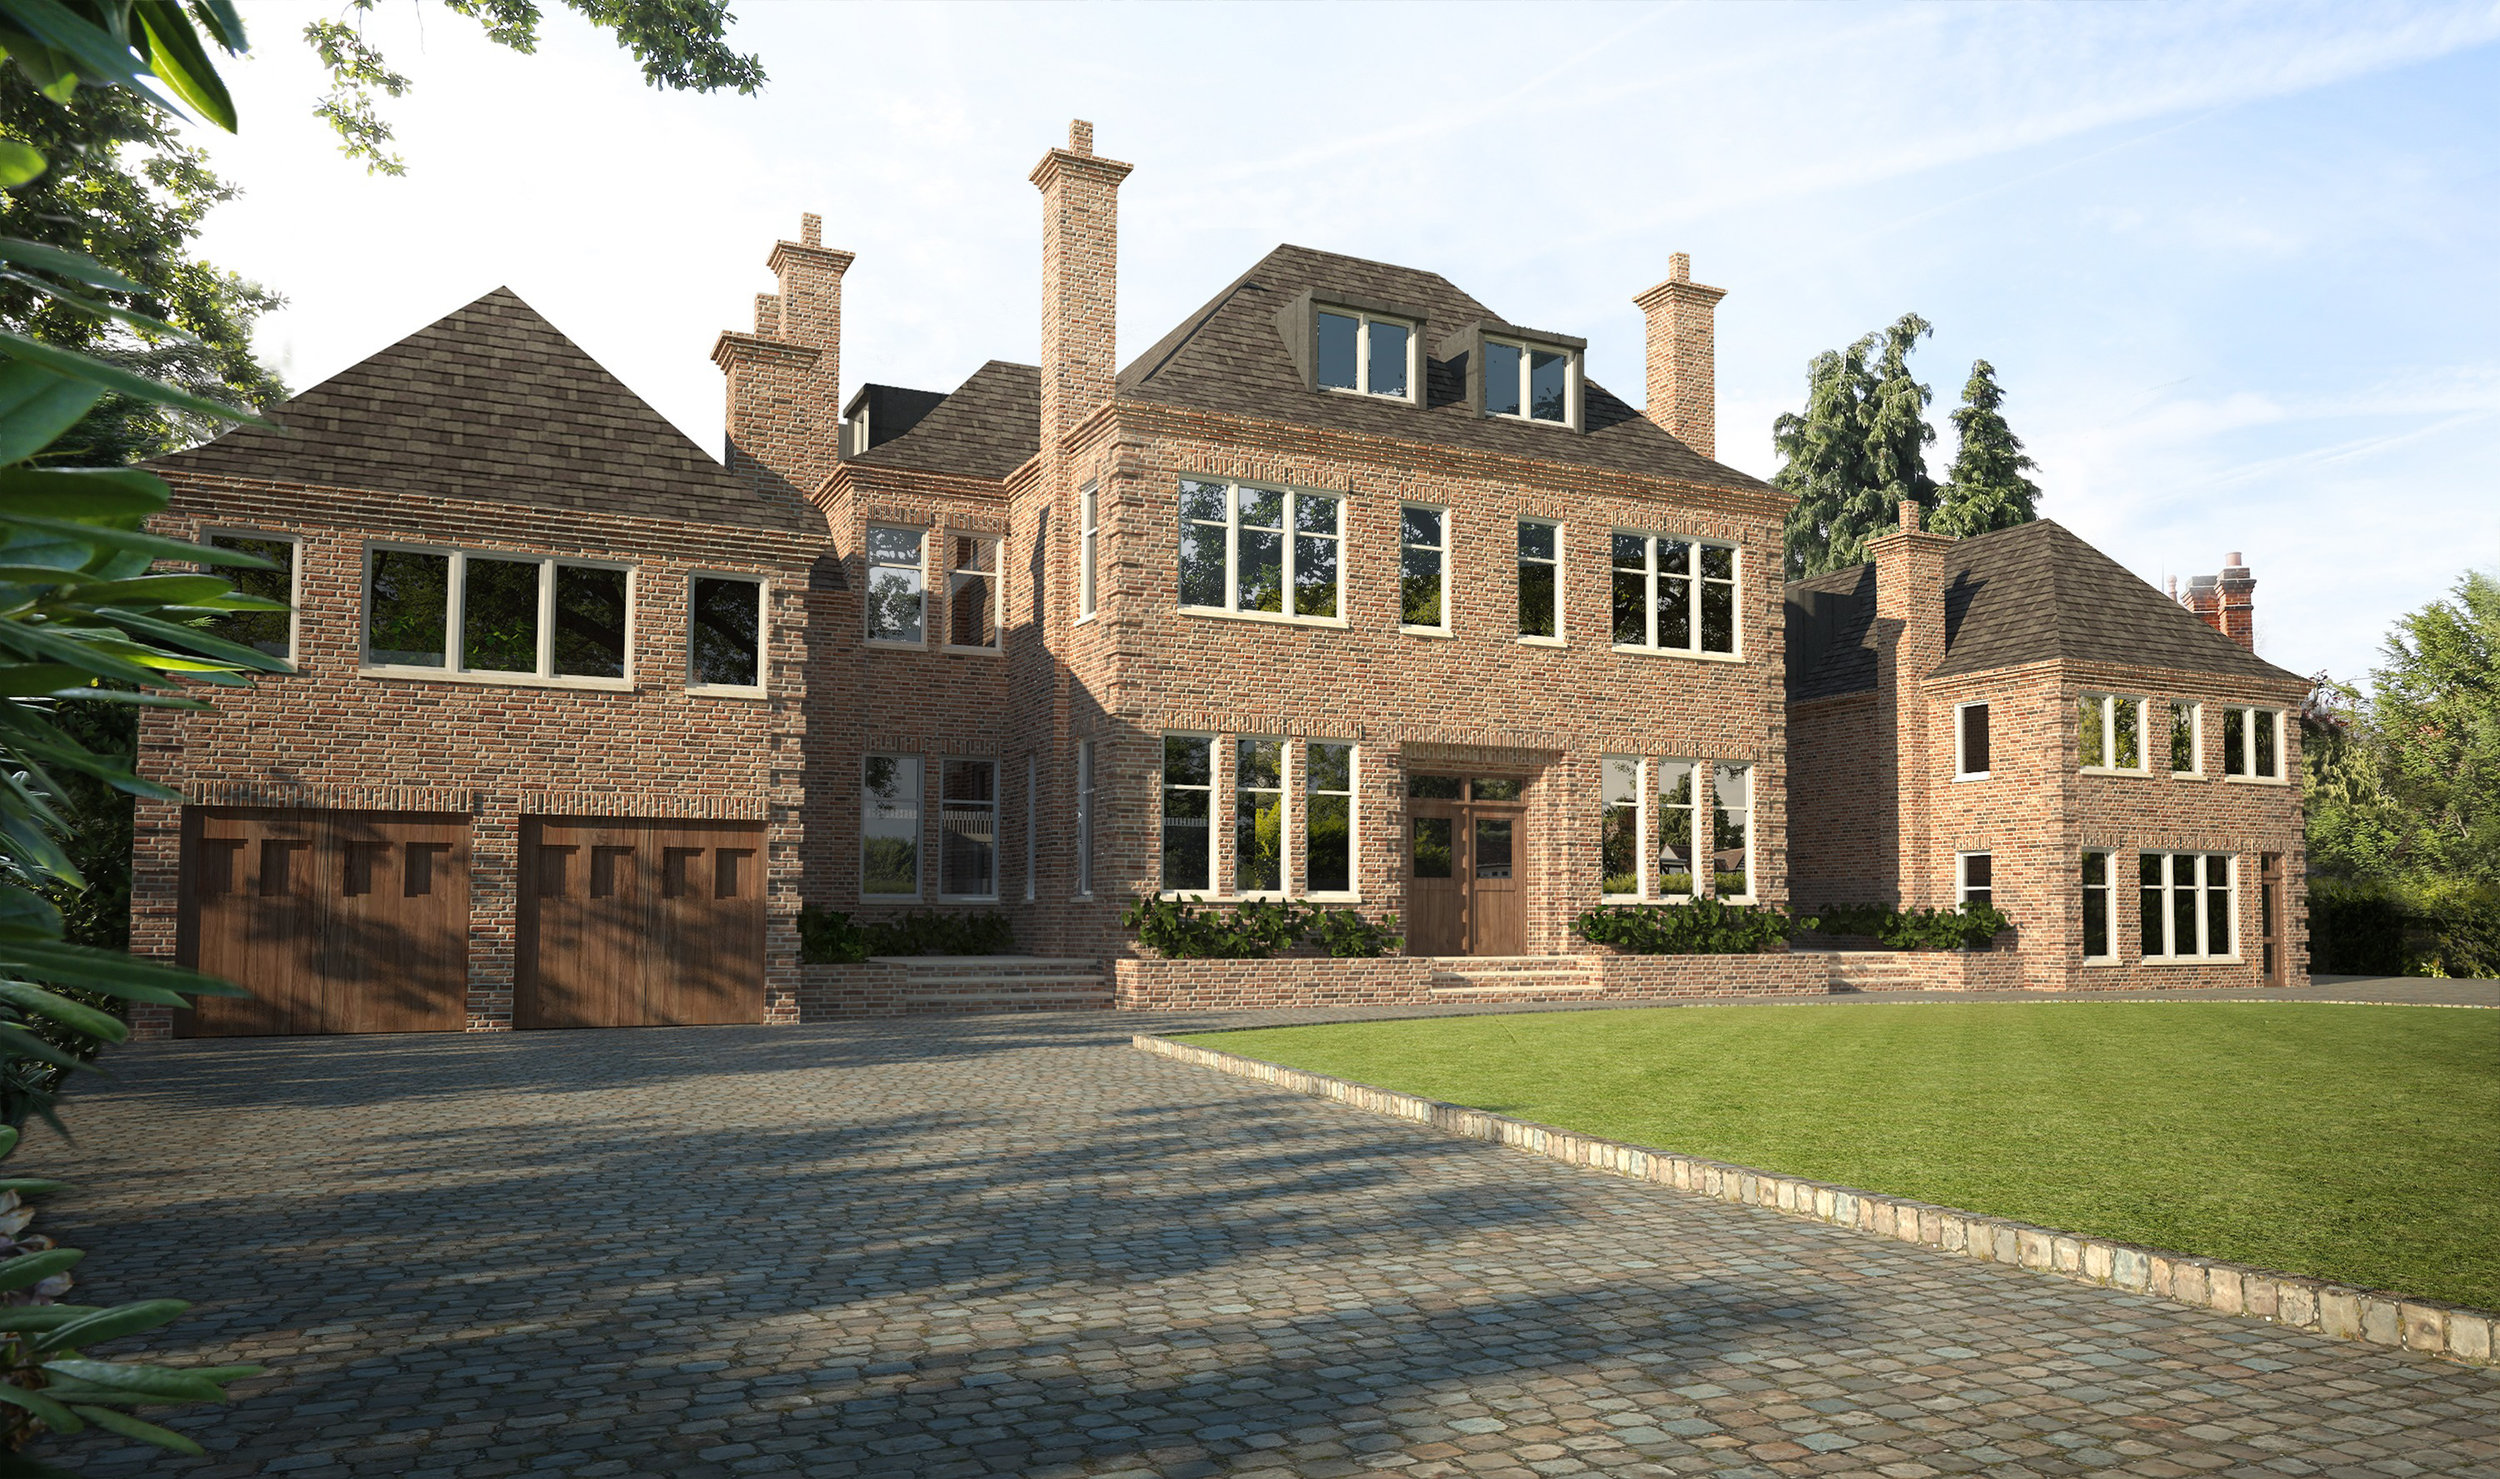 New build 1900sqm residential development, two detached houses on Broad Walk in Winchmore Hill.